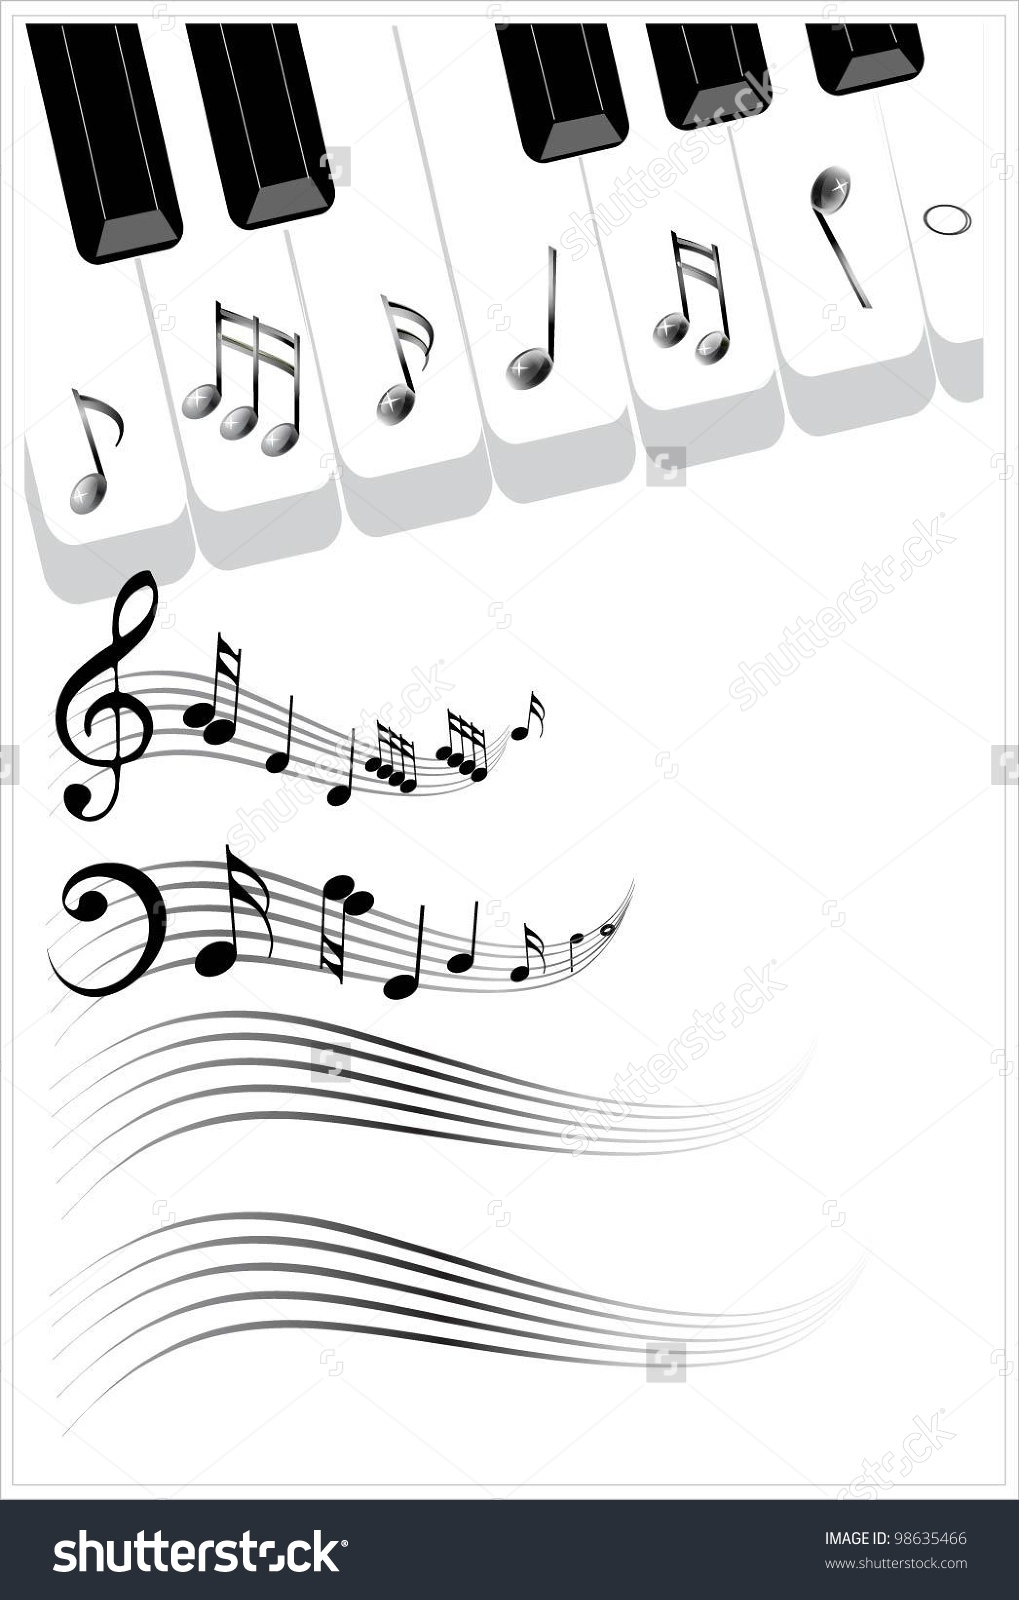 Piano sheet music clipart clip art library download Clip Art Illustration Music Background Piano Stock Vector 98635466 ... clip art library download